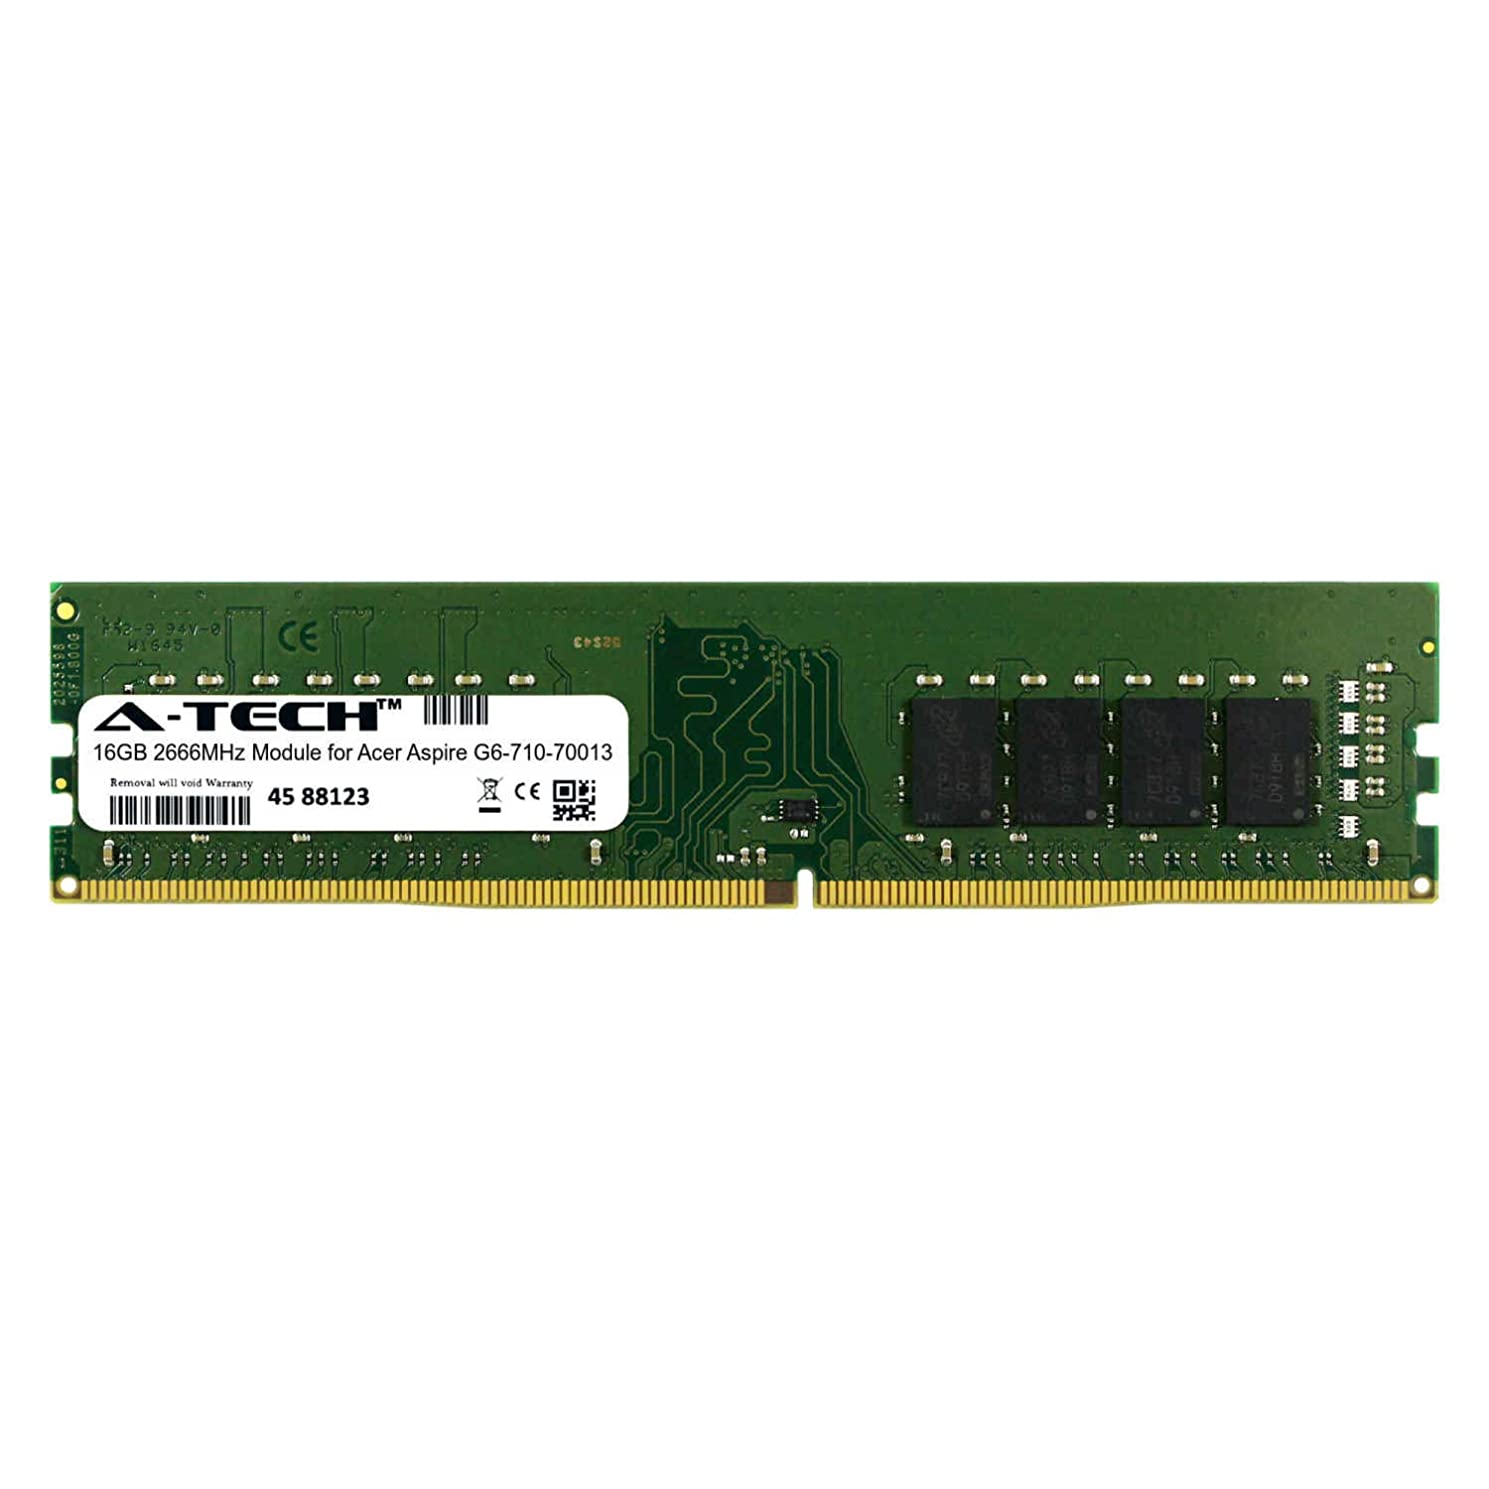 A-Tech 16GB Module for Acer Aspire G6-710-70013 Desktop & Workstation Motherboard Compatible DDR4 2666Mhz Memory Ram (ATMS267490A25823X1)